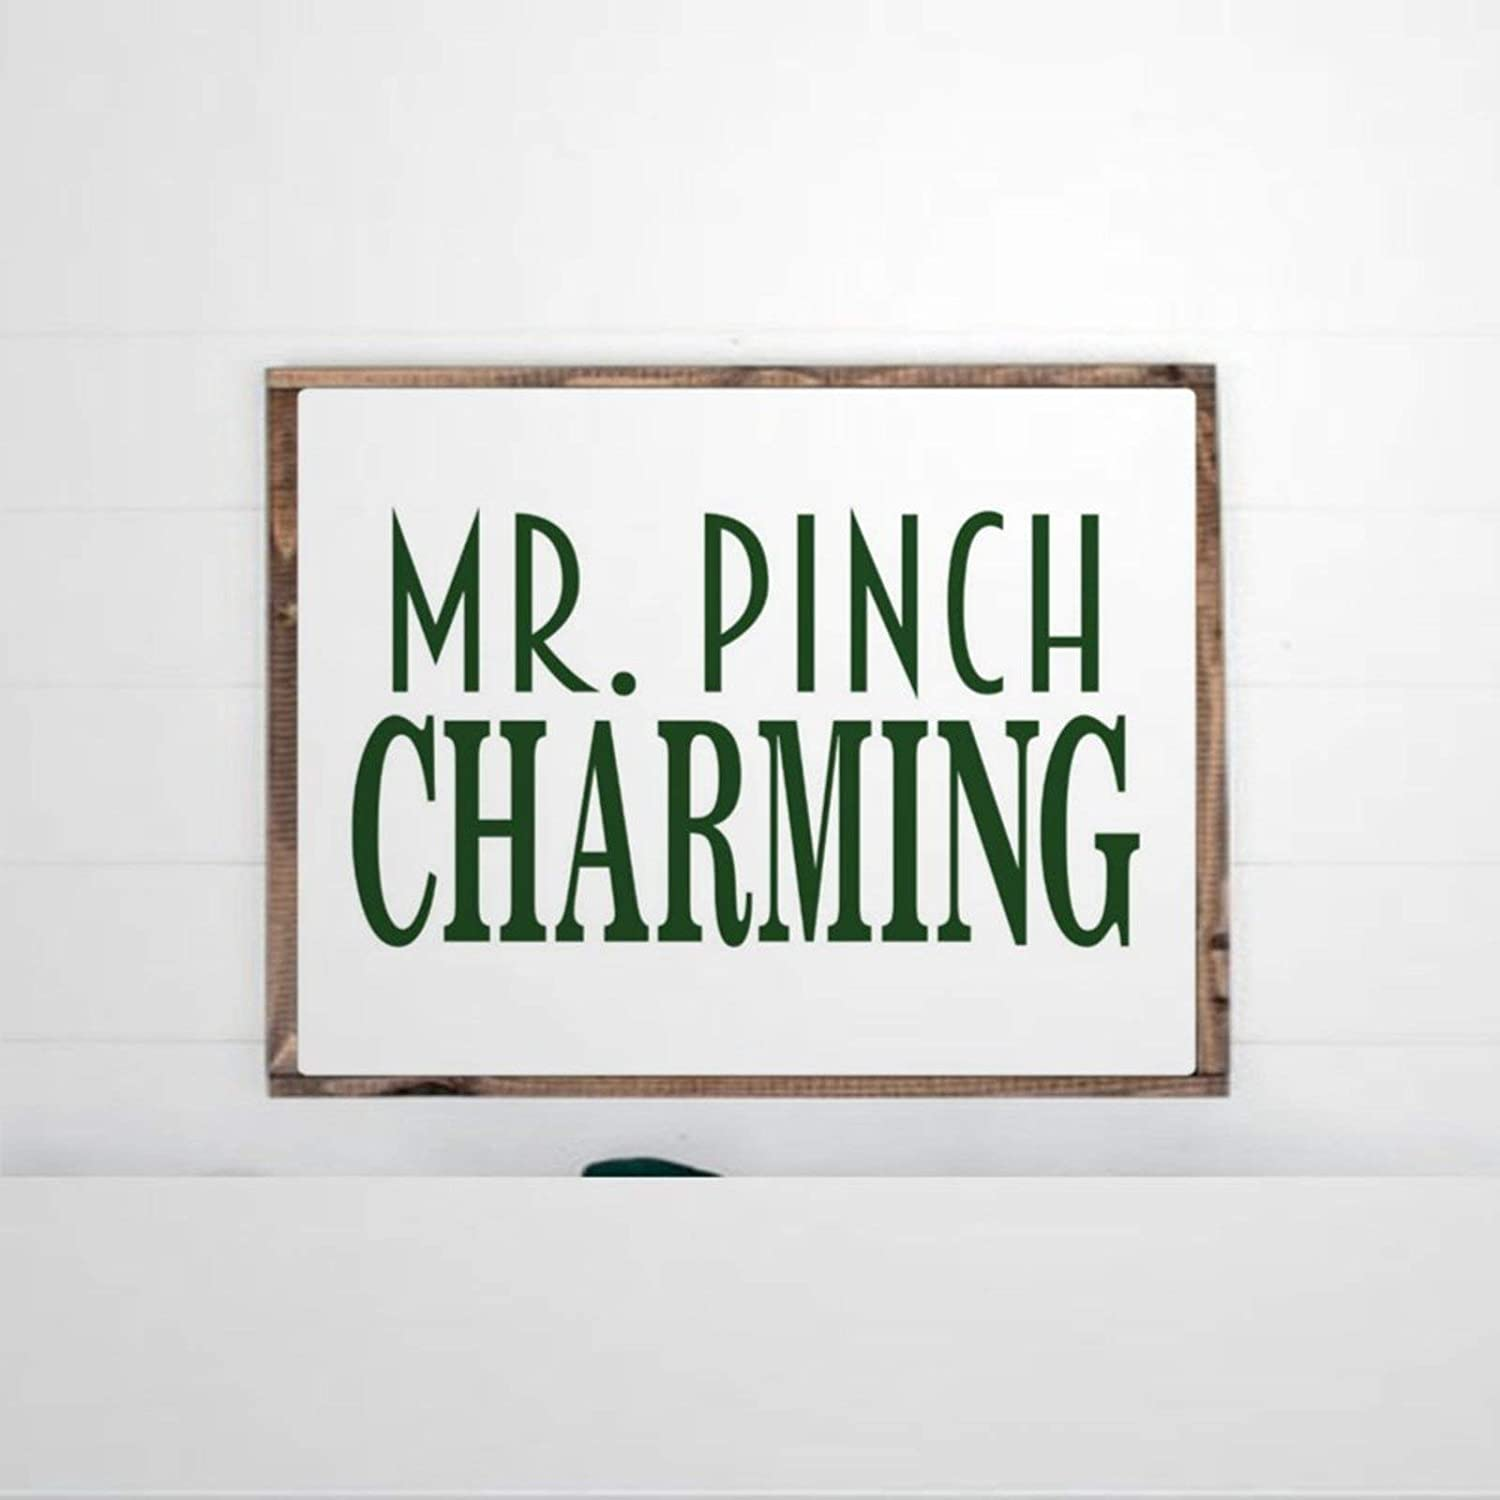 DONL9BAUER Mr Pinch Charming St Patricks Day Framed Wooden Sign,Saint Lucky Charm Wood Wall Decor Sign, Farmhouse Wooden Plaque Art for Home,Gardens, Porch, Gallery Wall, Coffee Shops.